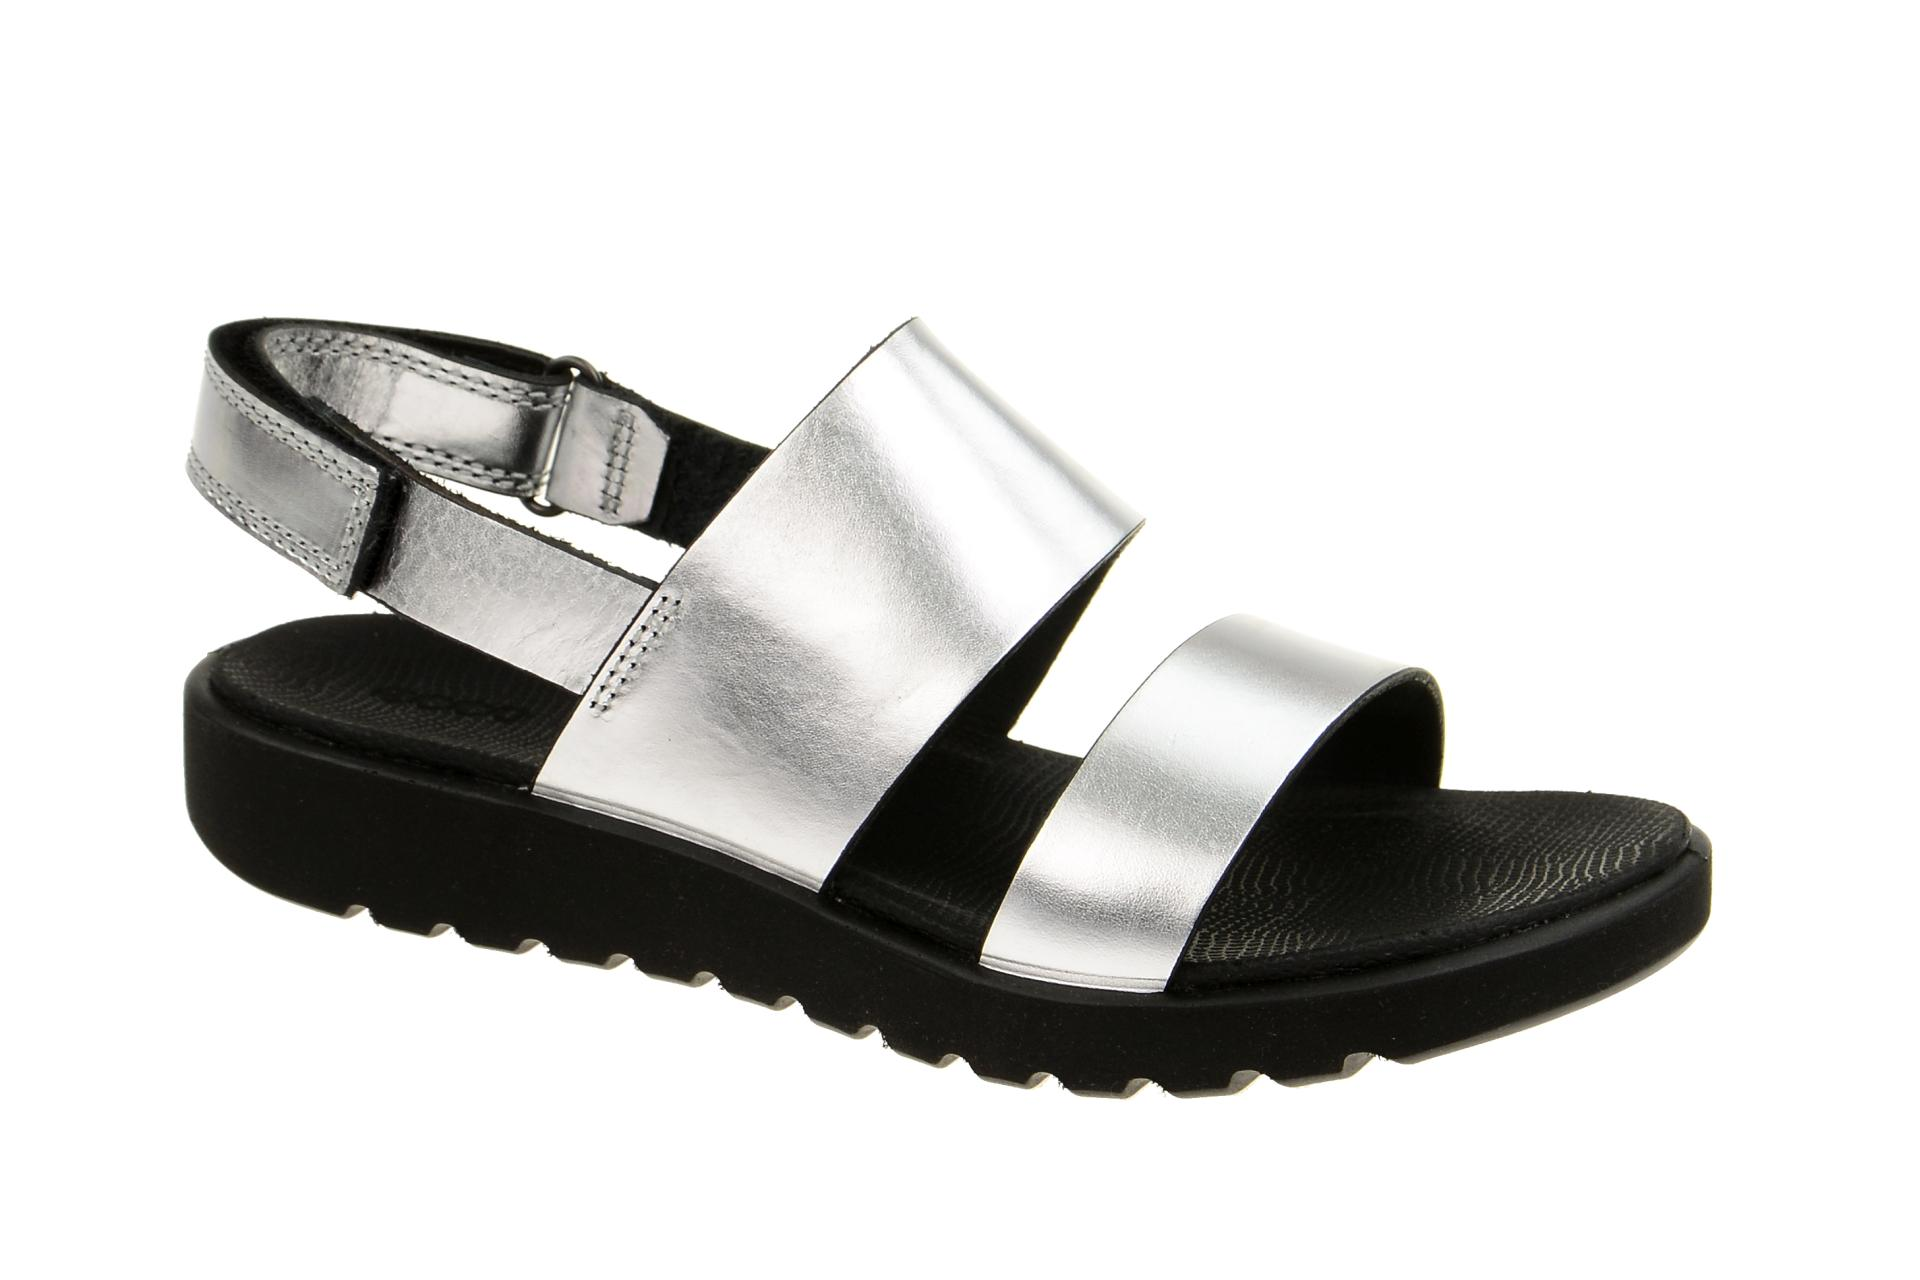 outlet store ced03 d5749 Ecco Freja Sandale silber metallic 23864302097